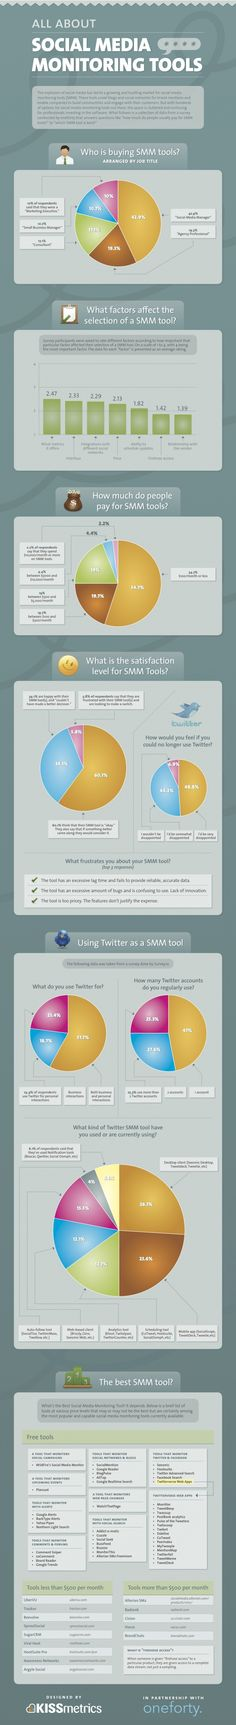 Excellent infographic on Social Media Monitoring Tools